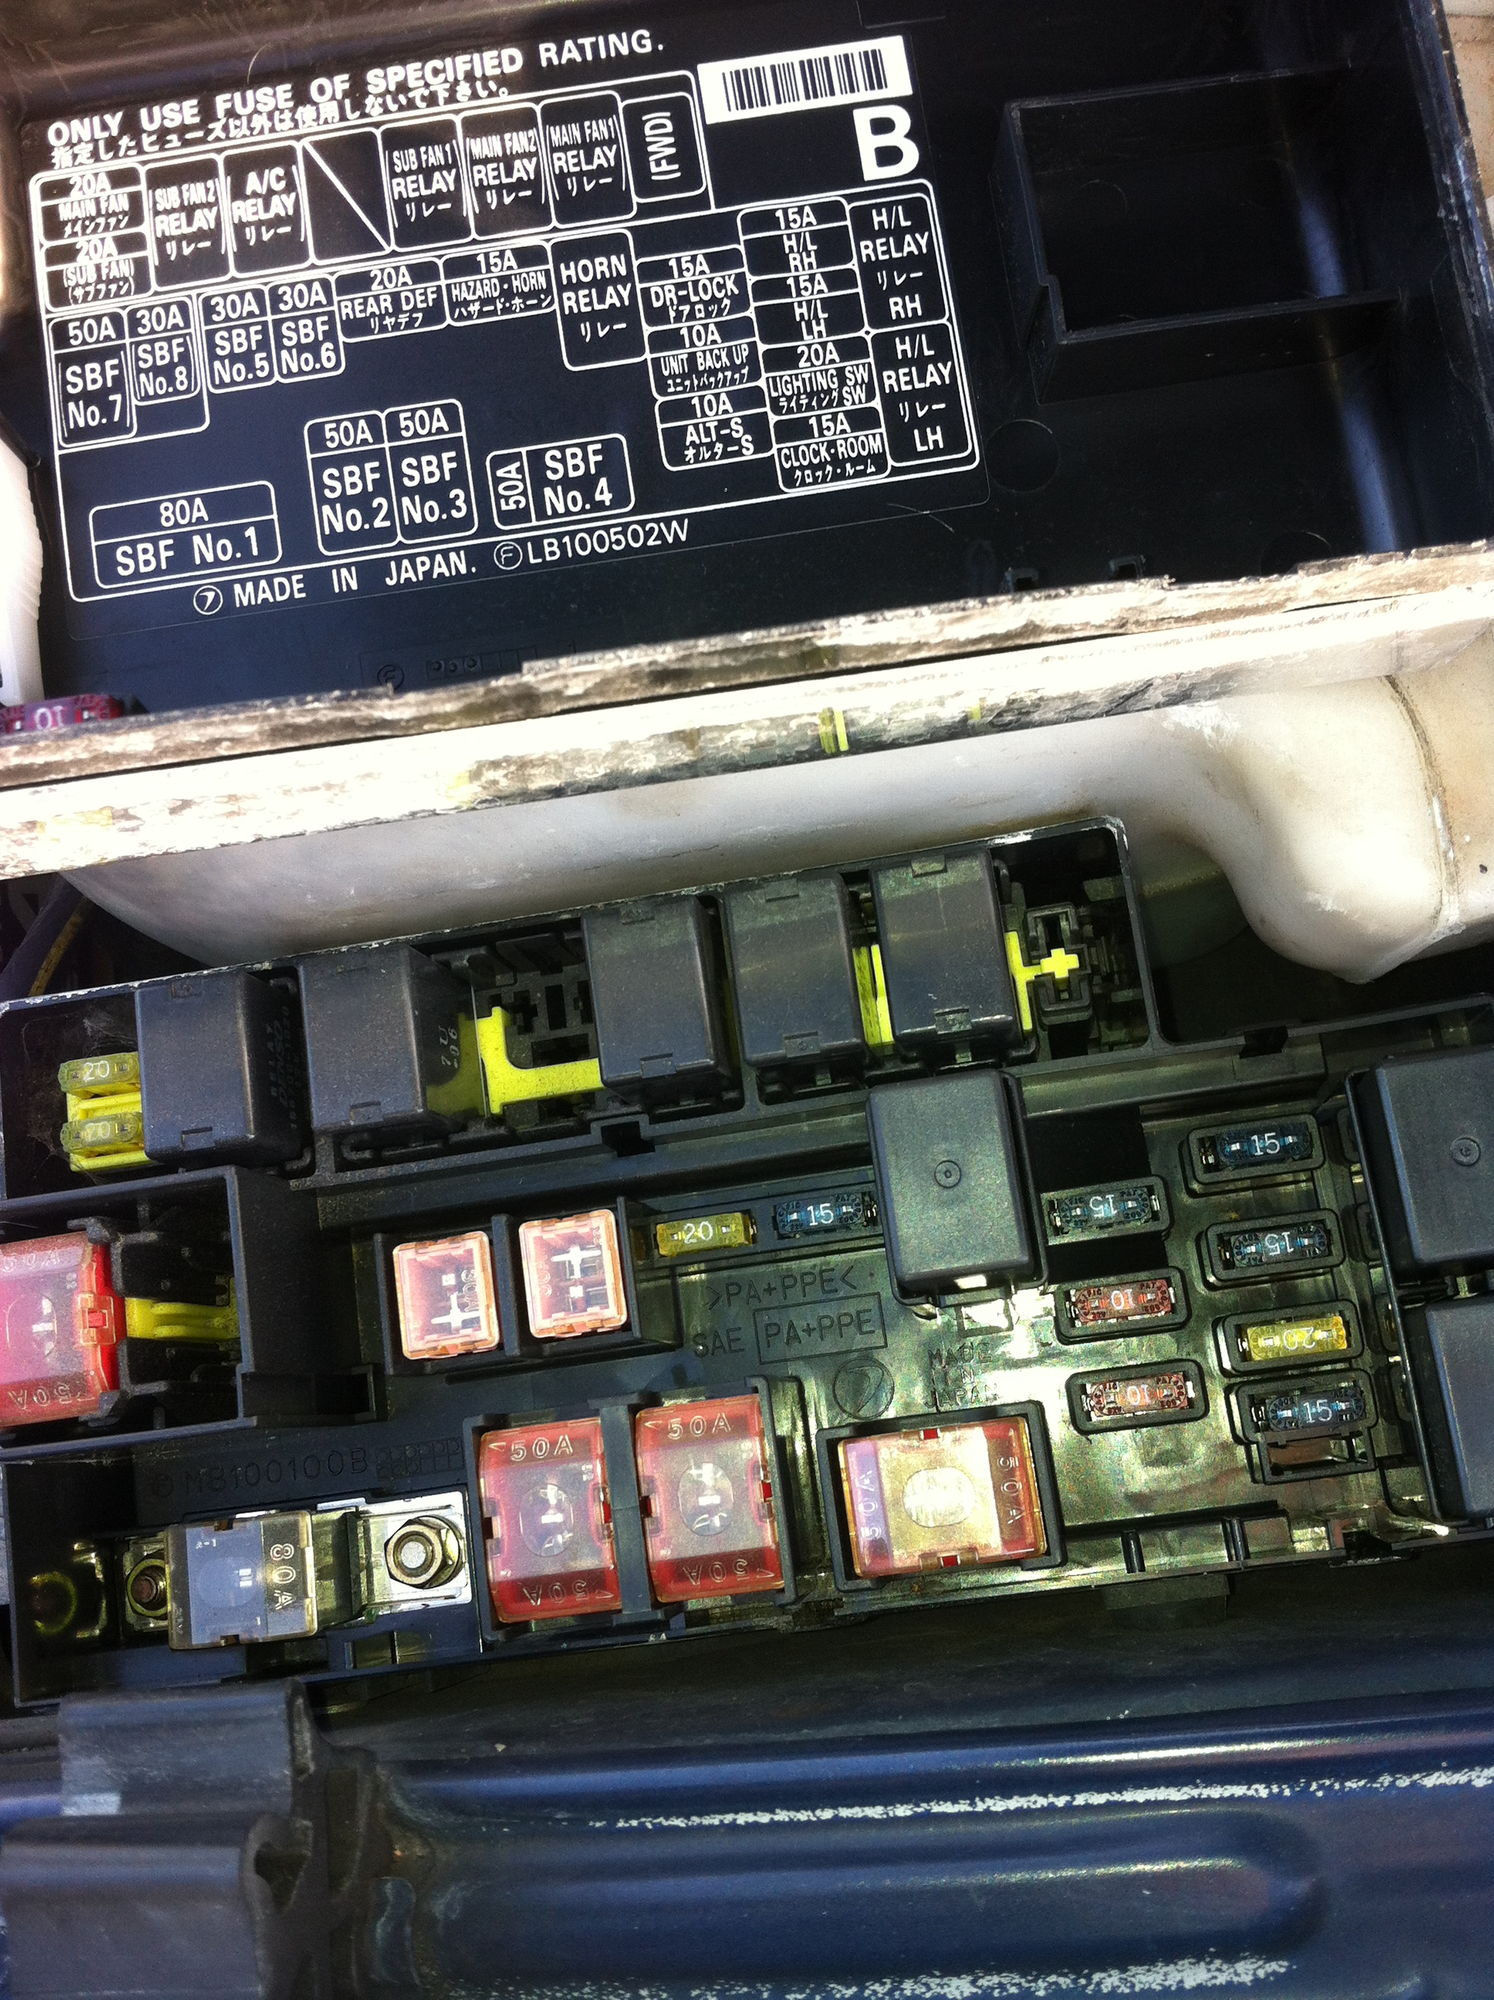 Mr2 Turbo Or Integra Type R Subaru Enthusiast Forum Fuse Box Ok So Here Is My Fusebox In The Bonnet With Diagram Of What